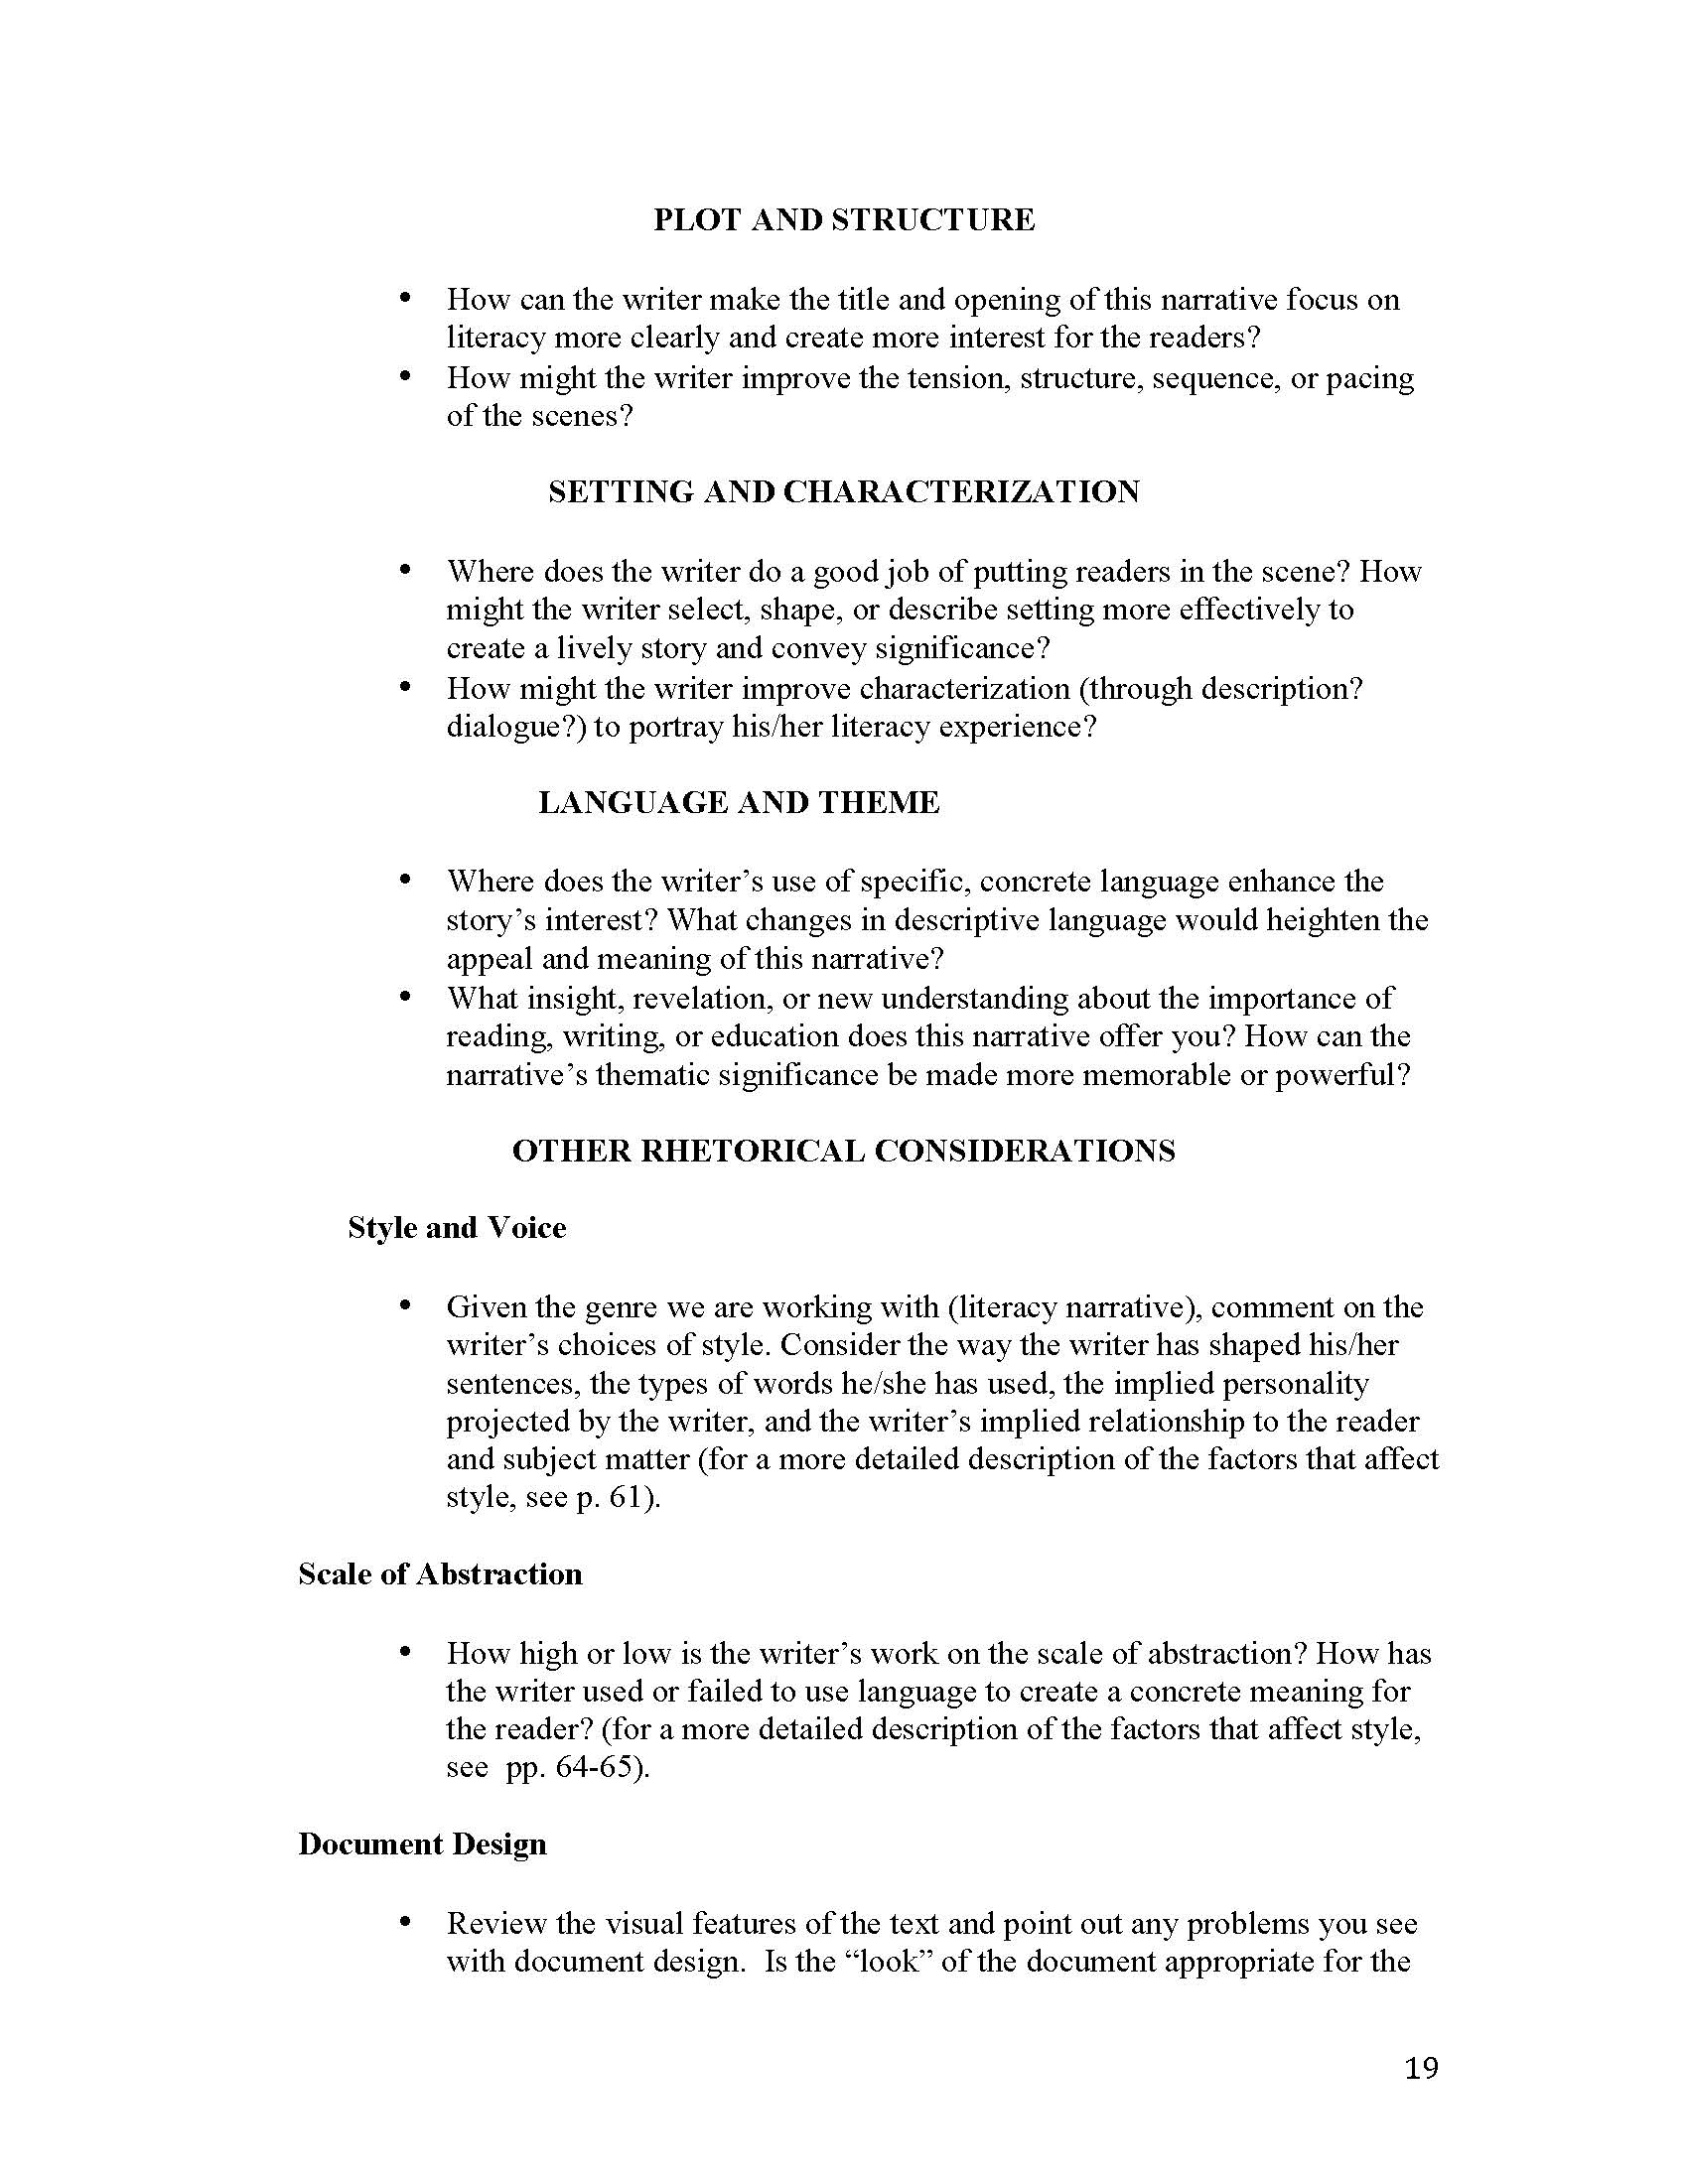 010 Unit 1 Literacy Narrative Instructor Copy Page 19 Immigration Essay Exceptional Conclusion Topics Full